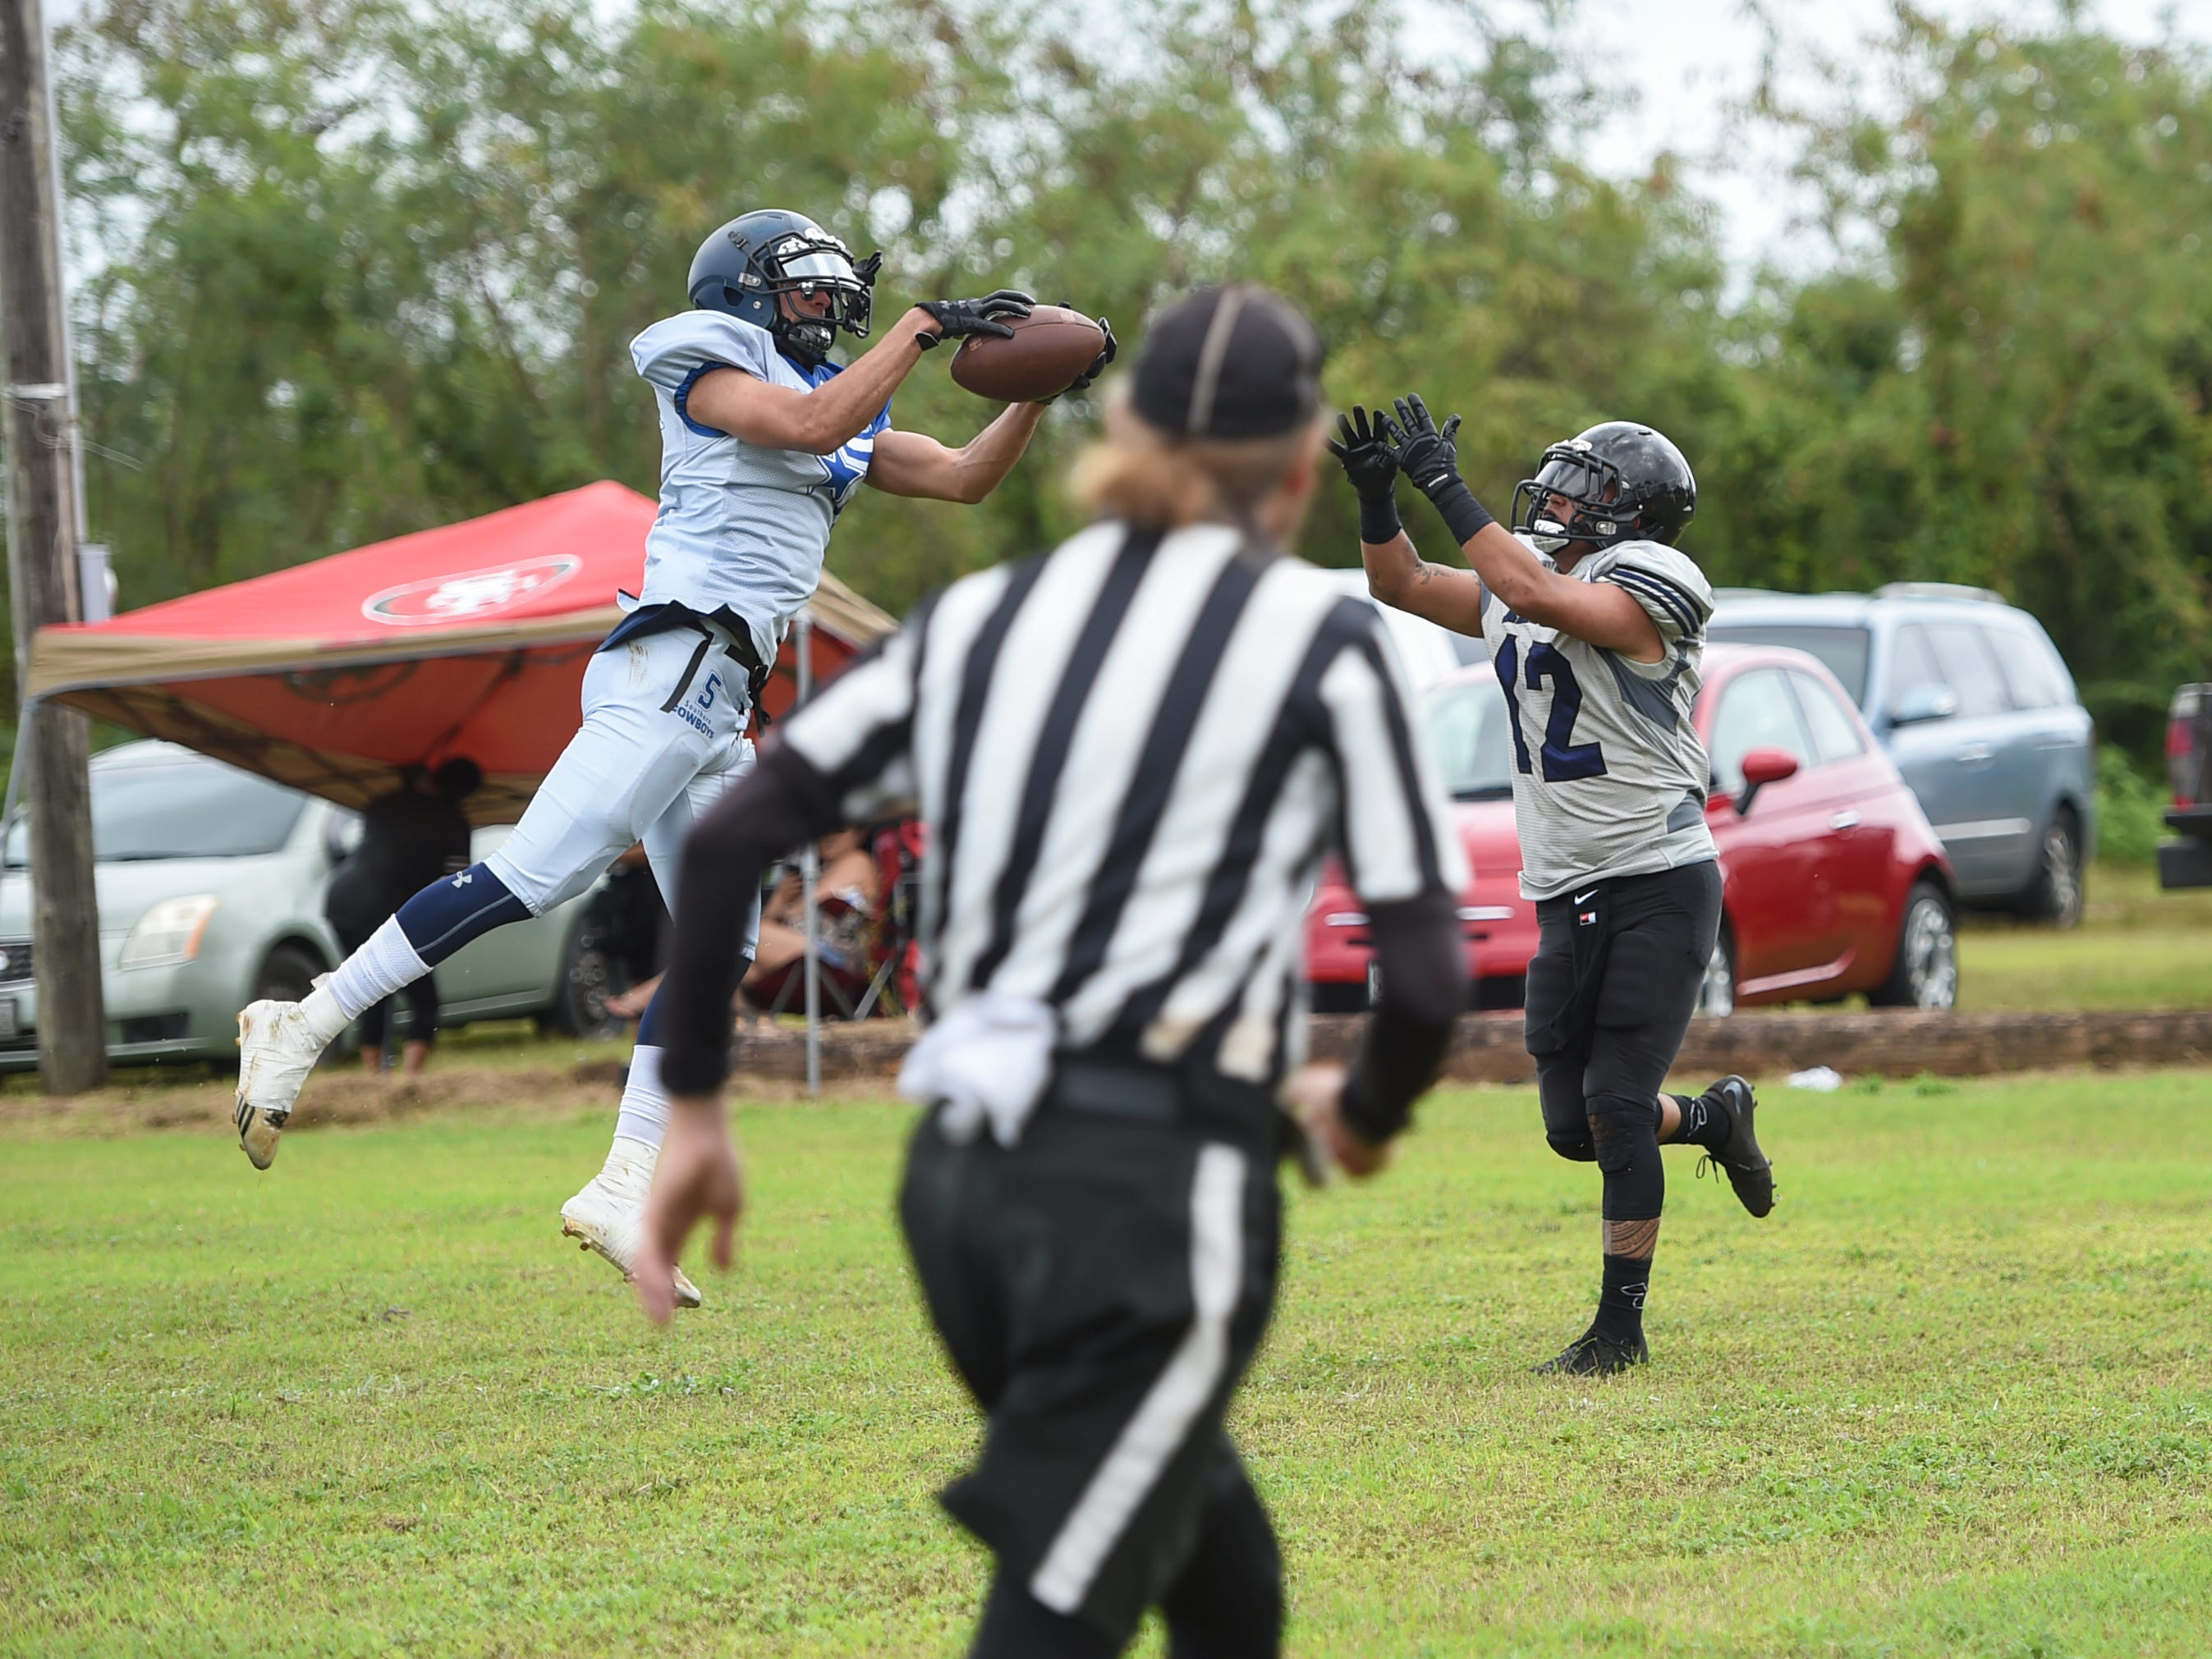 Southern Cowboys player Logan Hatcher (5) intercepts a pass intended for Guam Raiders' Storm Rosario (12) during their Budweiser Guahan Varsity Football League game at Eagles Field in Mangilao, Feb. 2, 2019.